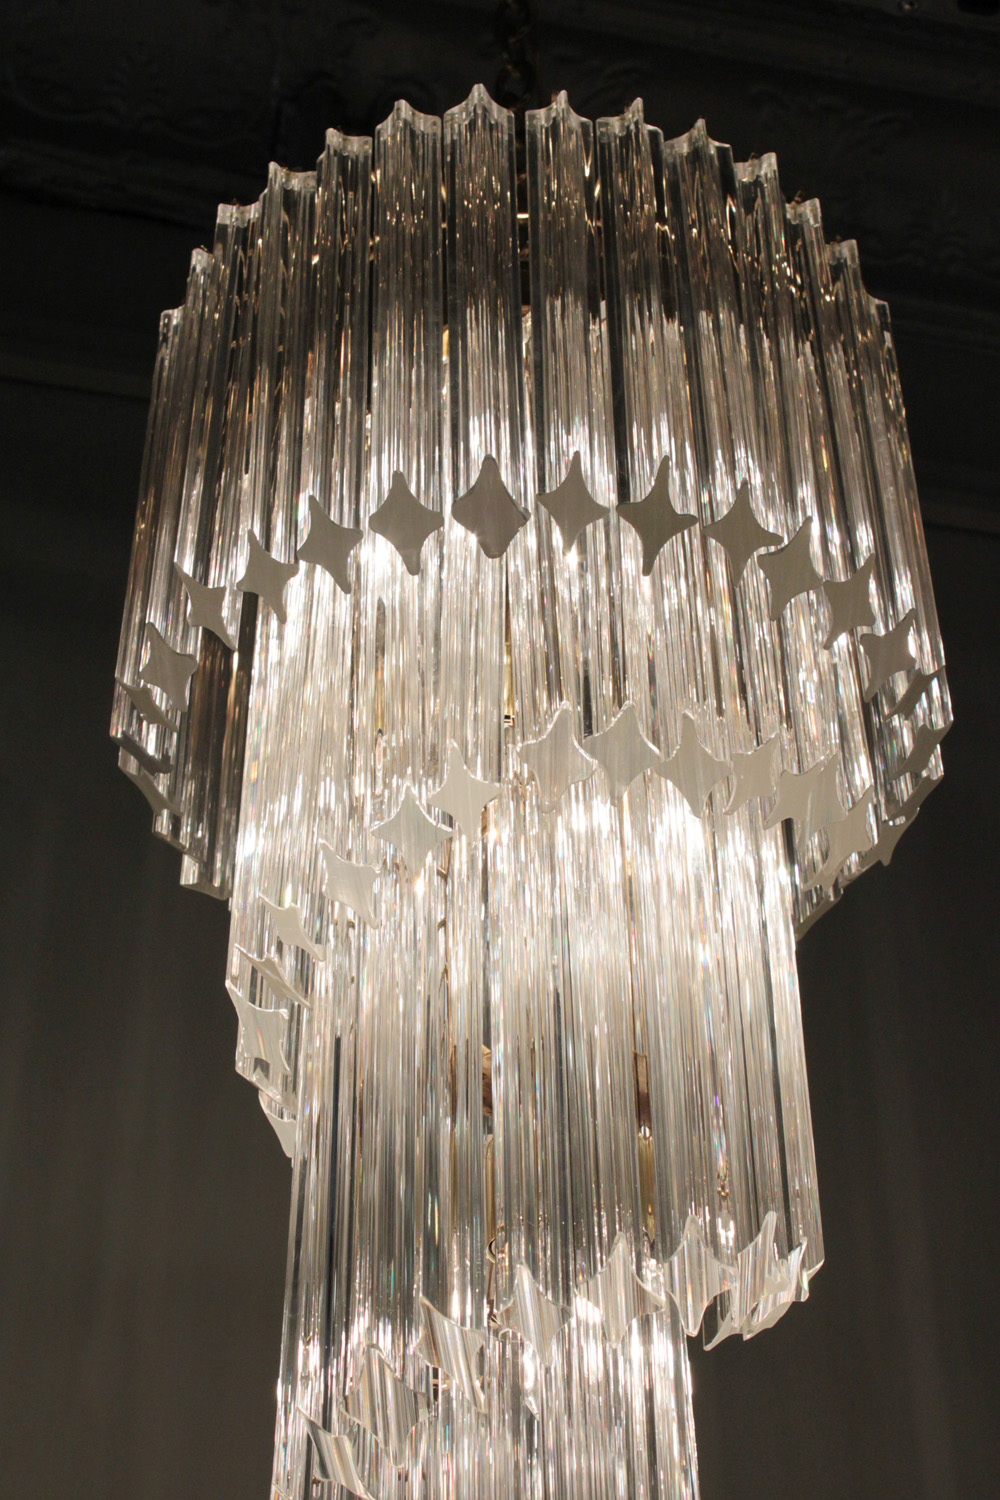 Venini 65 medium spiral glas rods chandelier top hires.jpg